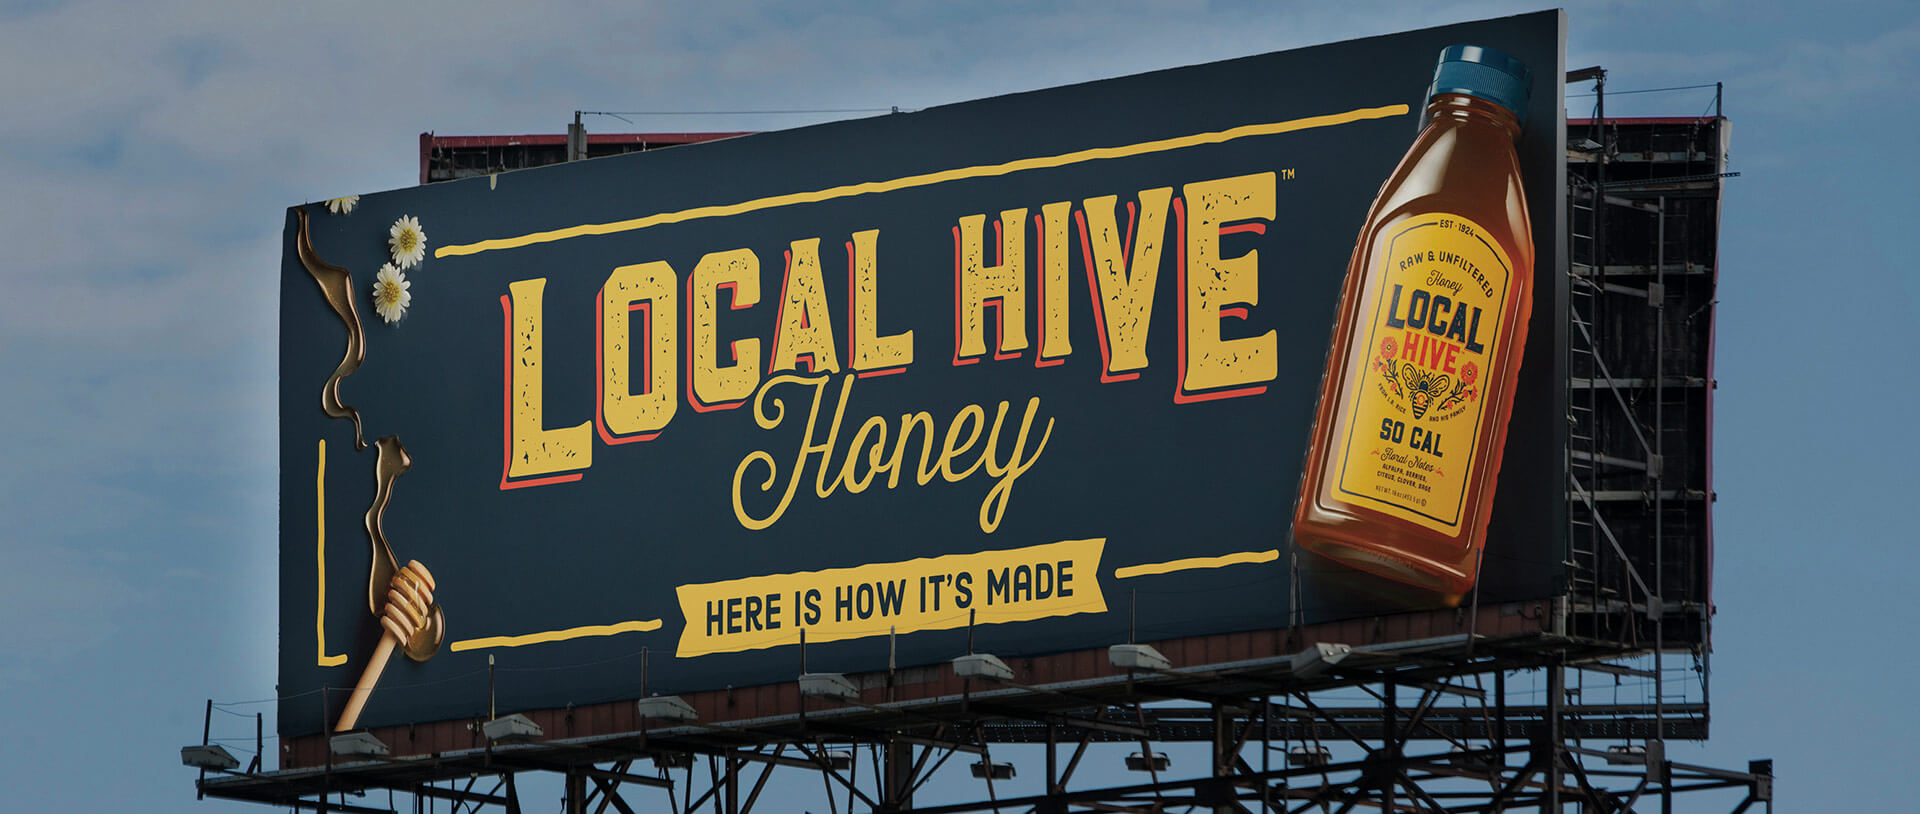 Local Hive Honey billboard